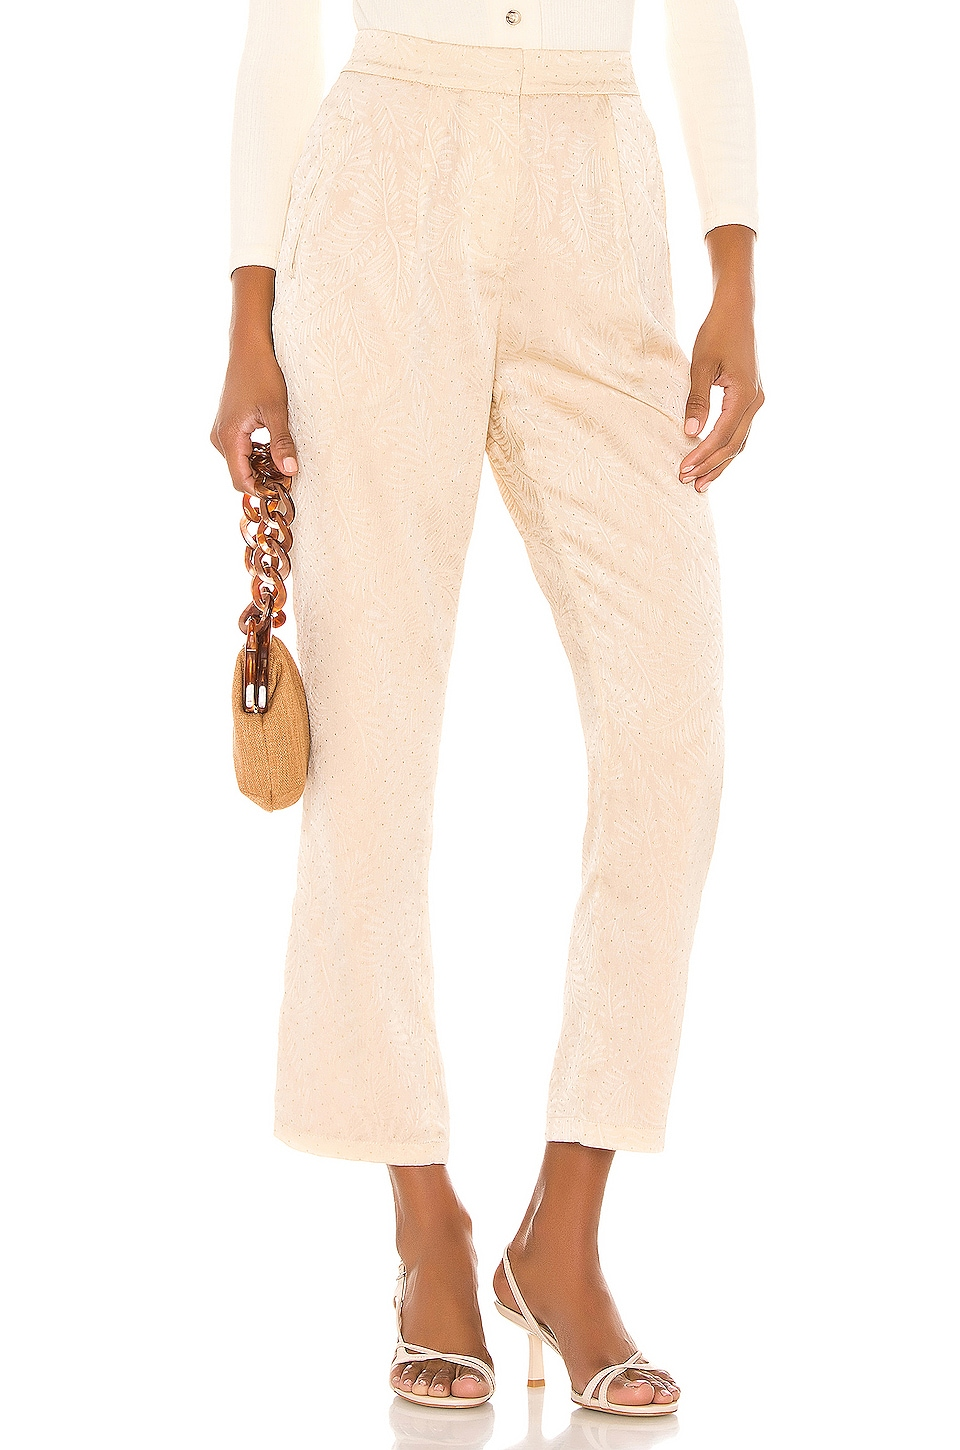 House of Harlow 1960 X REVOLVE Vincent Pant in Cream